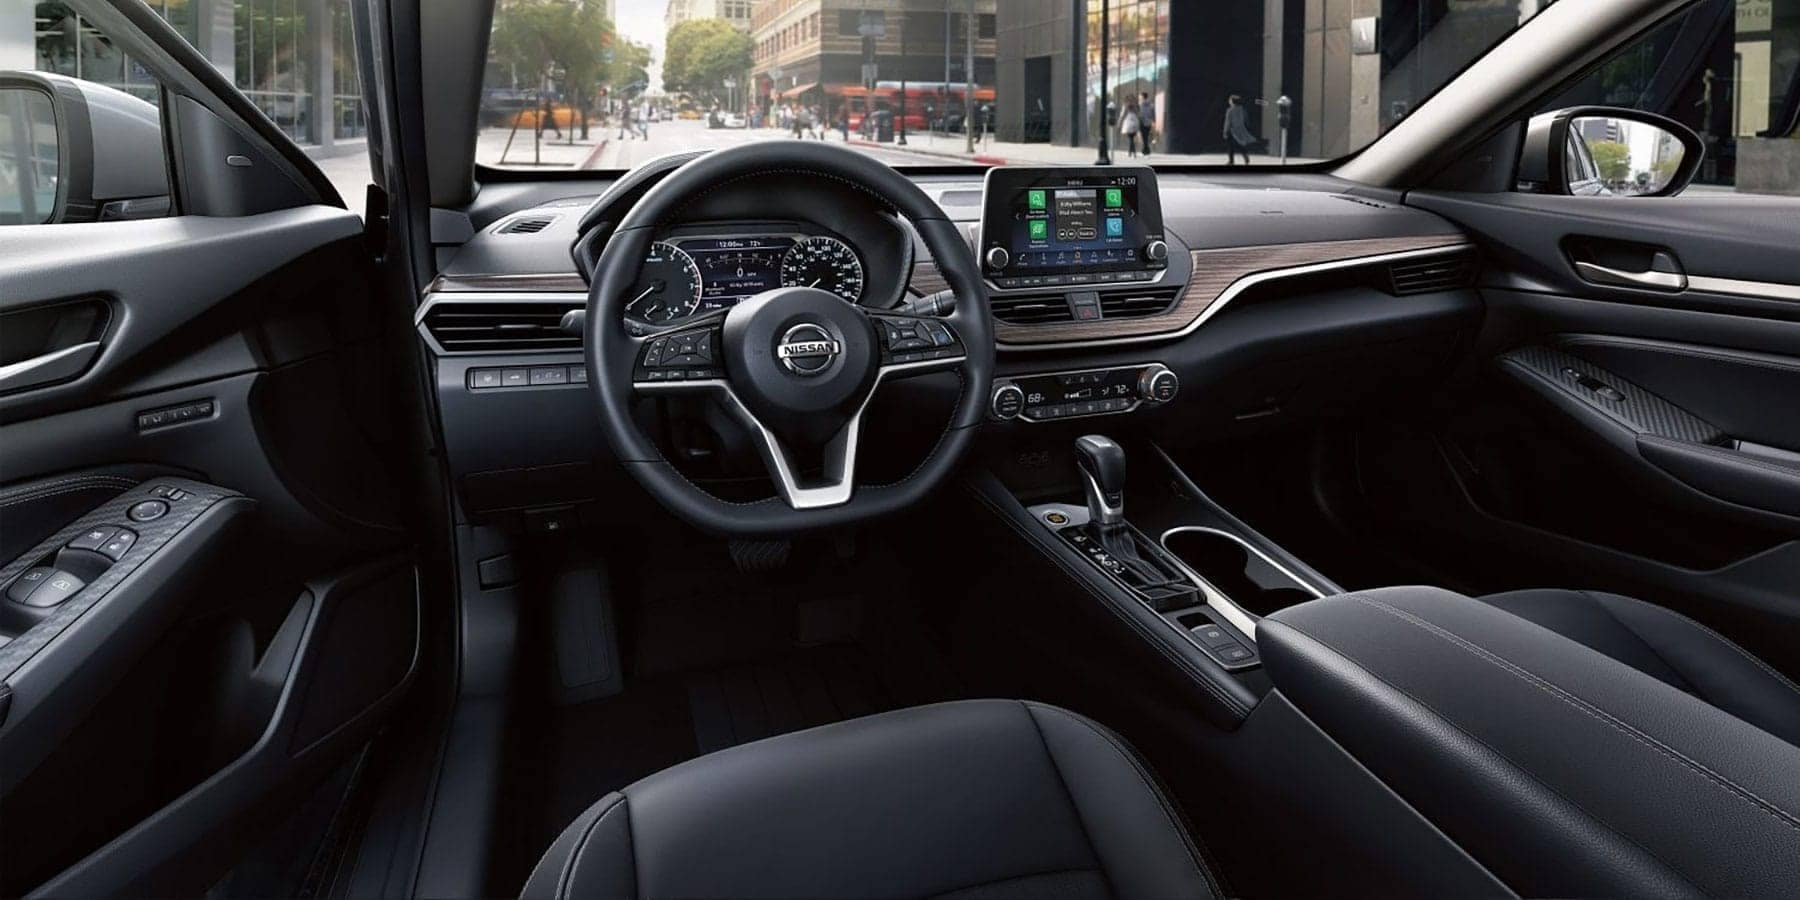 2019 Nissan Altima Vs 2019 Toyota Camry Which Is The